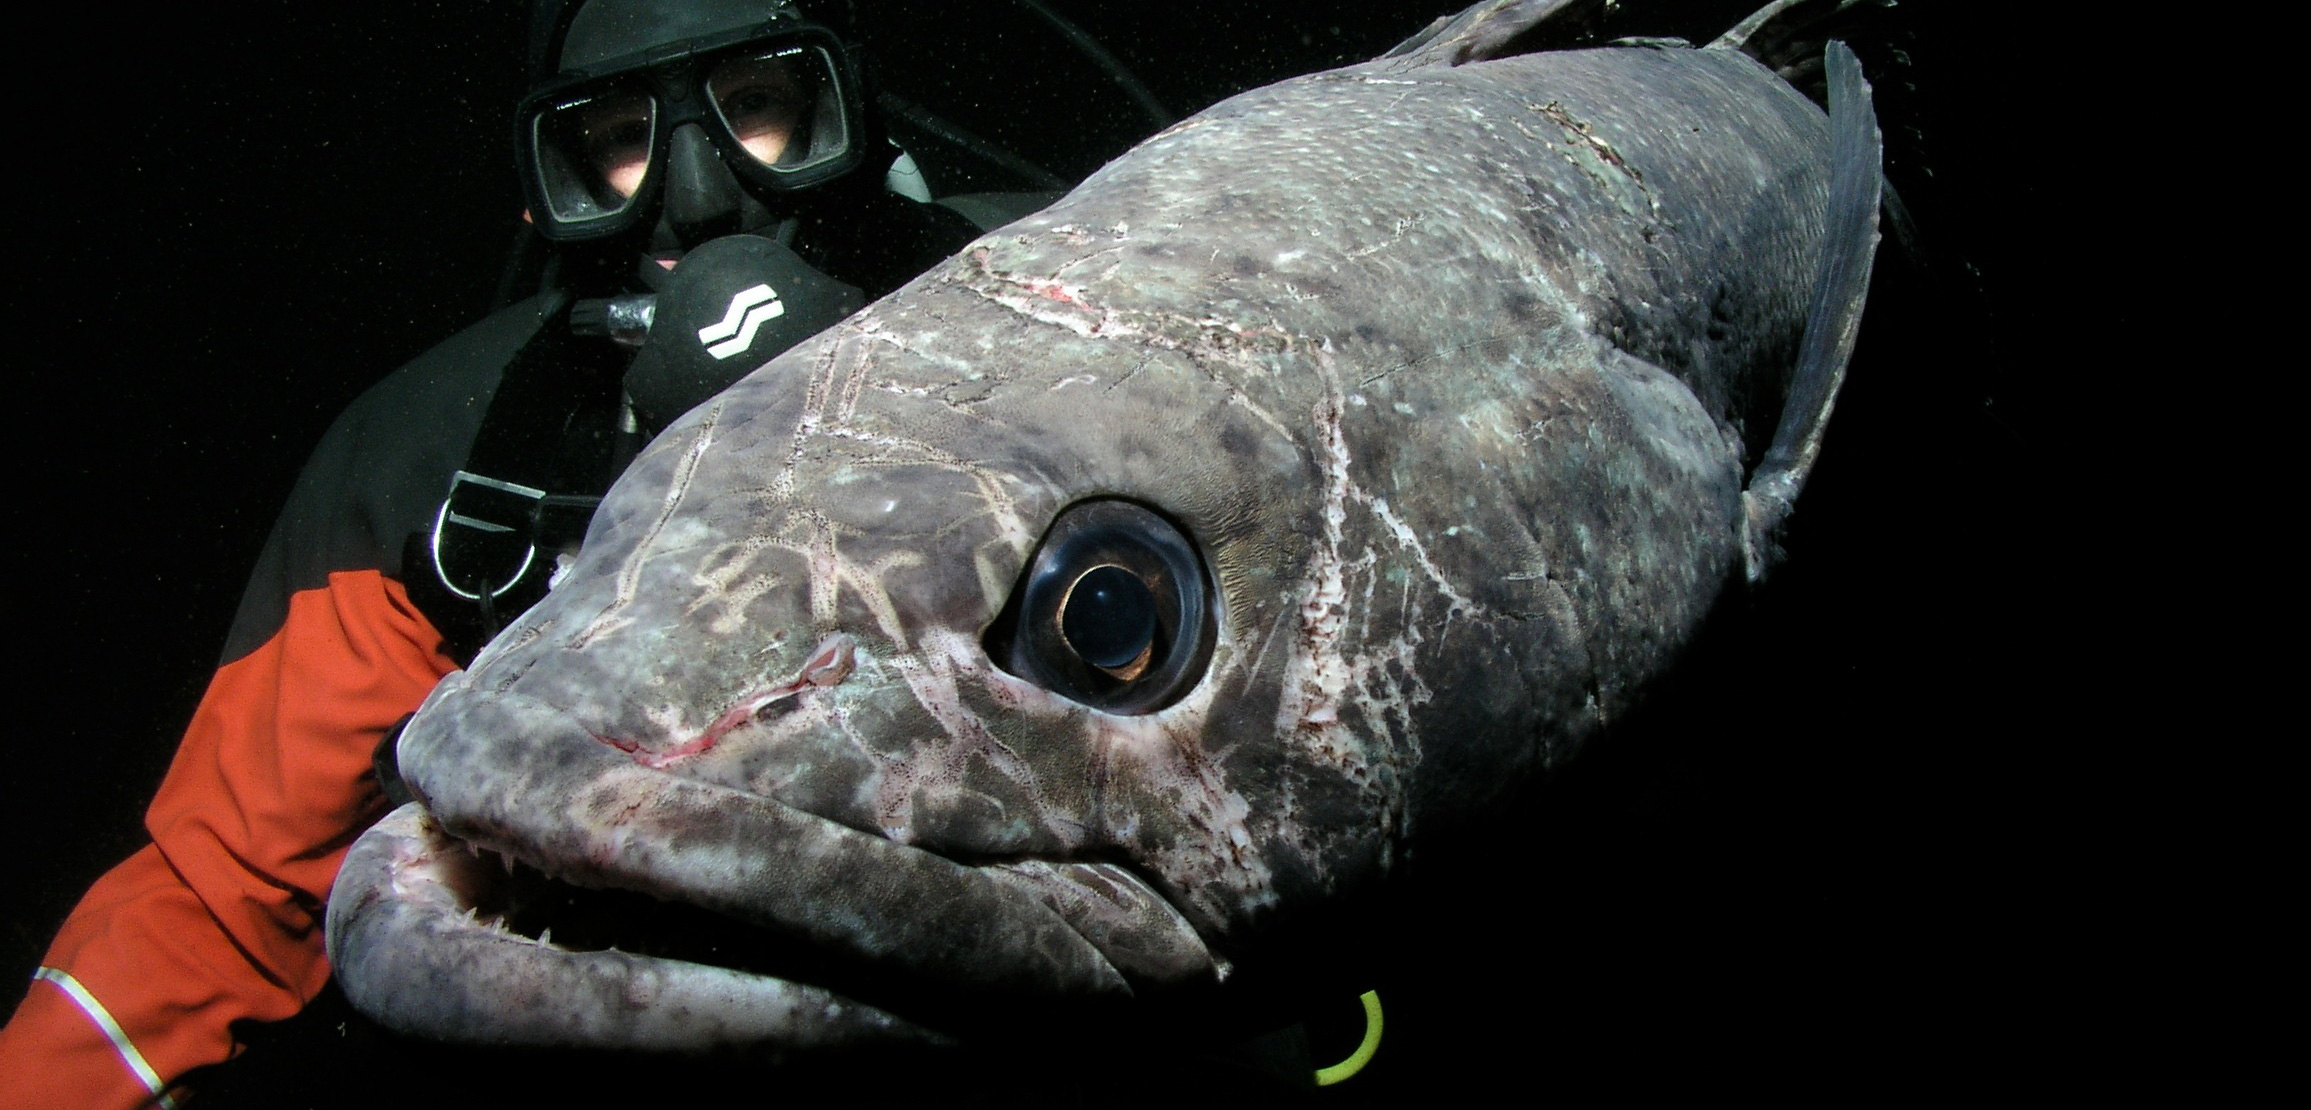 Antarctic toothfish, aka Chilean sea bass, are a prized catch in the Southern Ocean. Until recently, very little was known about their reproduction. Photo by Rob Robbins/USAP